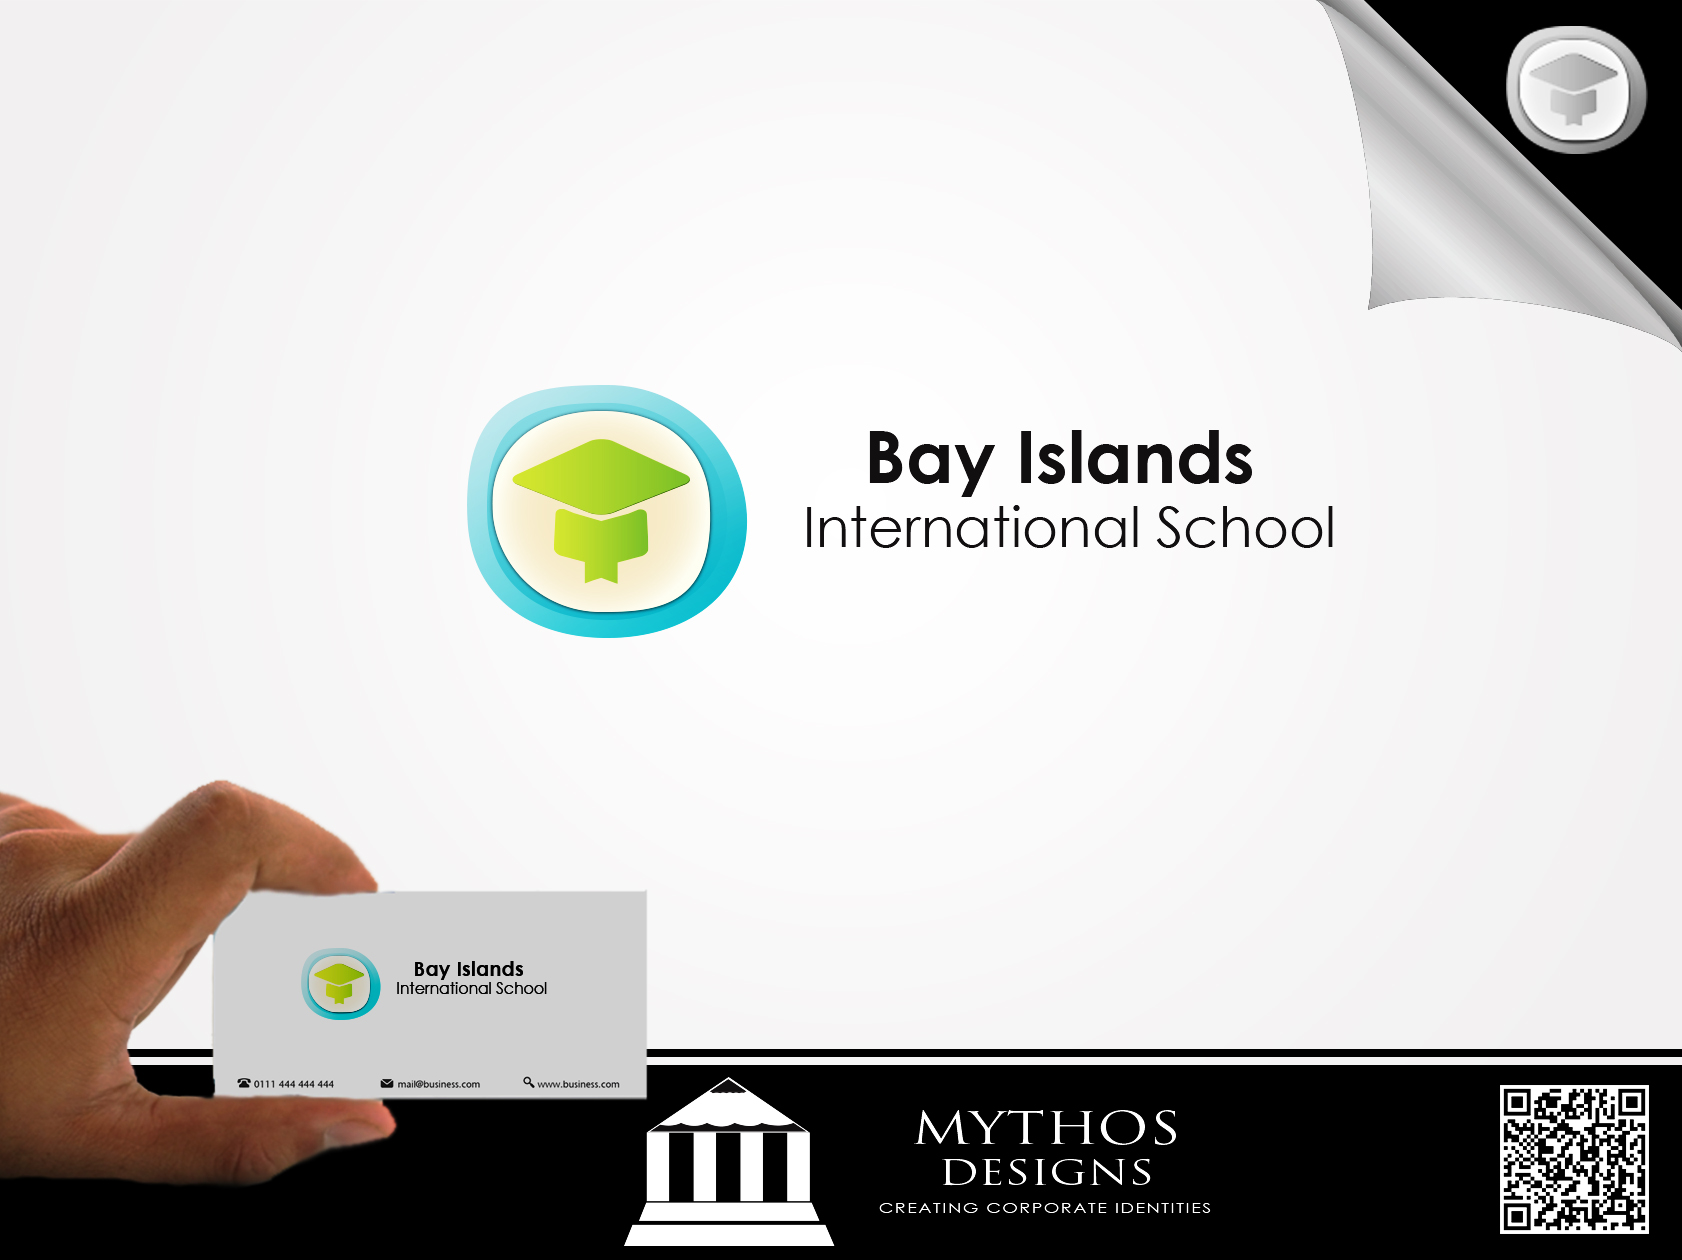 Logo Design by Mythos Designs - Entry No. 13 in the Logo Design Contest Creative Logo Design for Bay Islands International School.